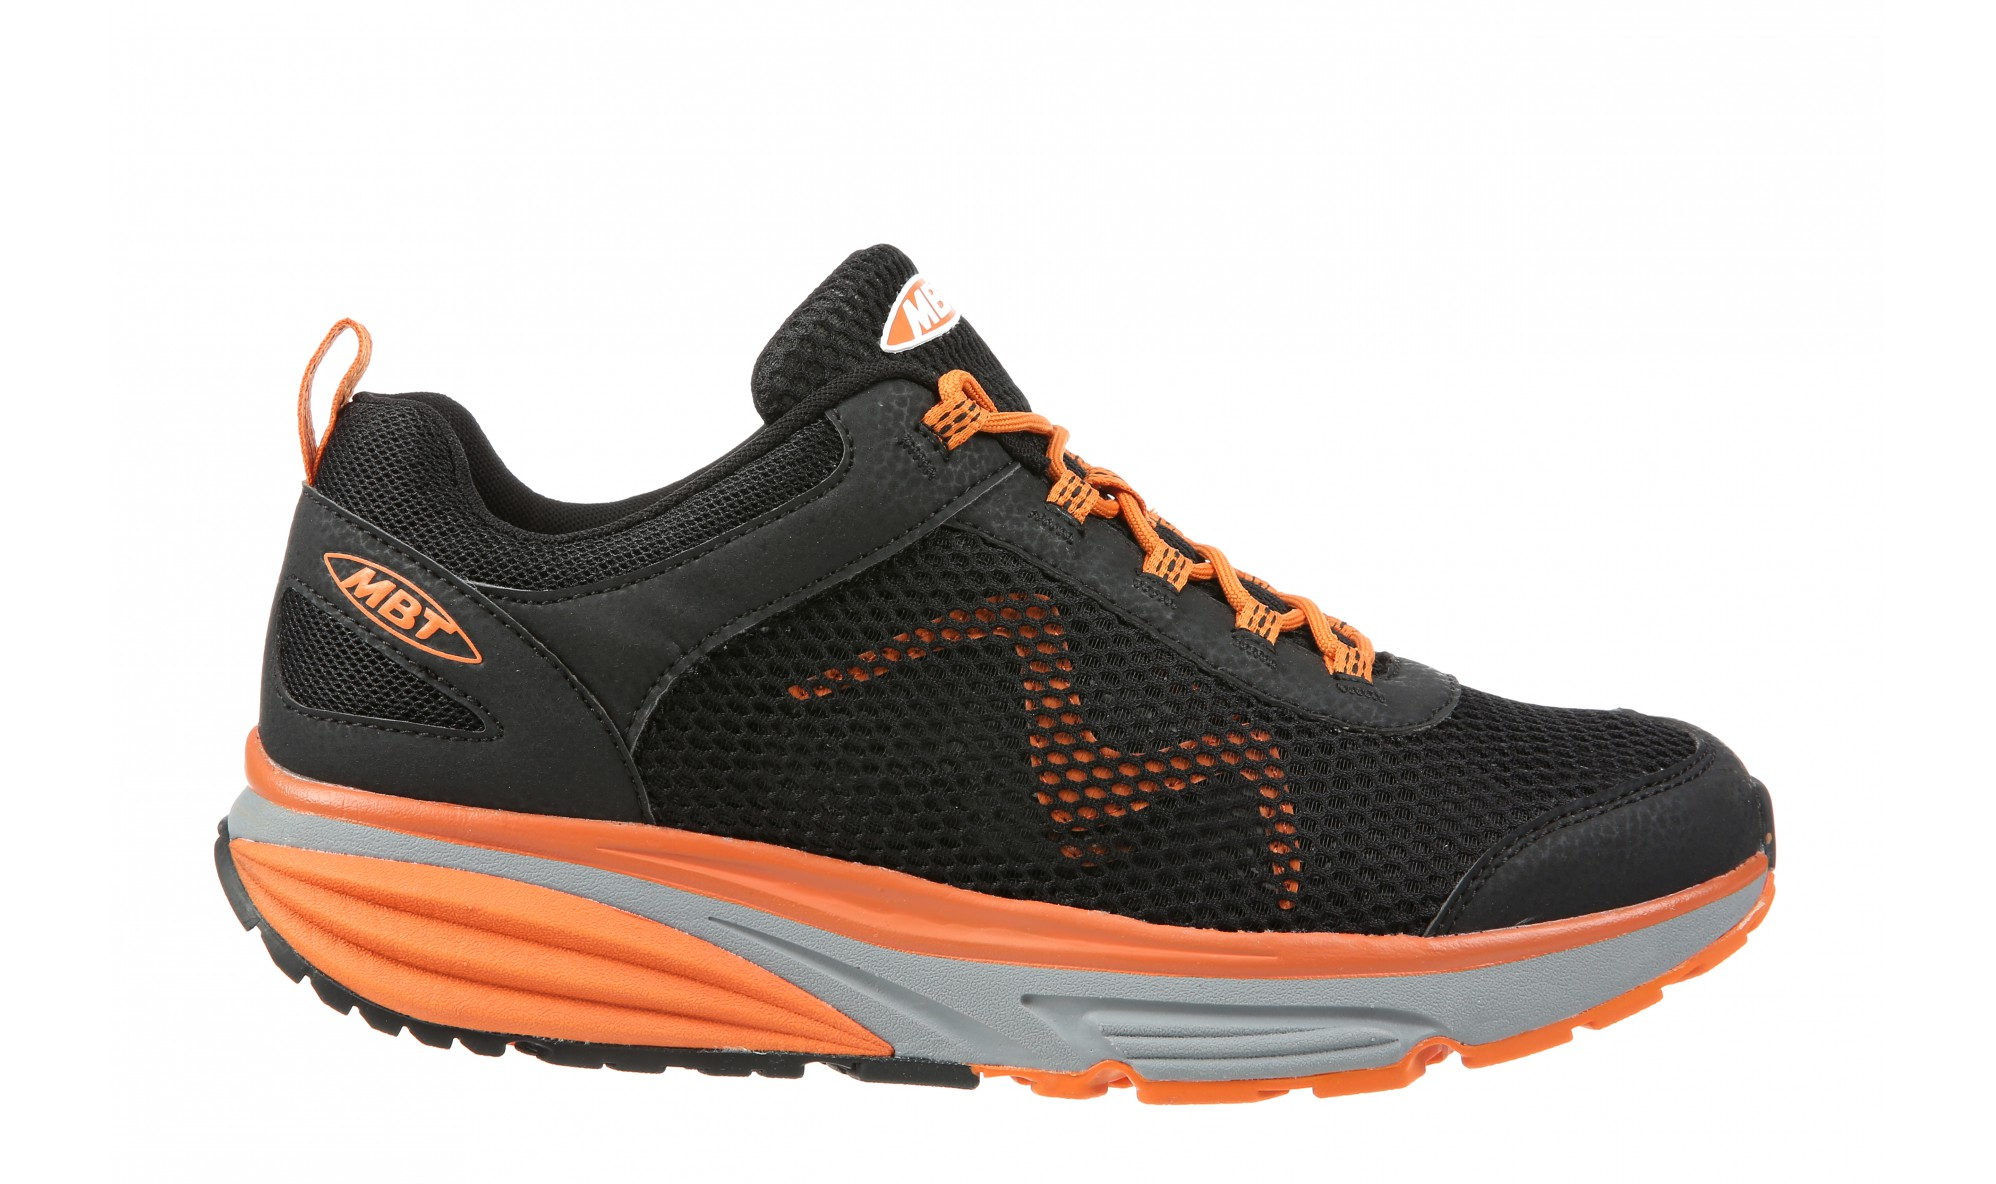 MBT Colorado 17 Men's Black / Orange